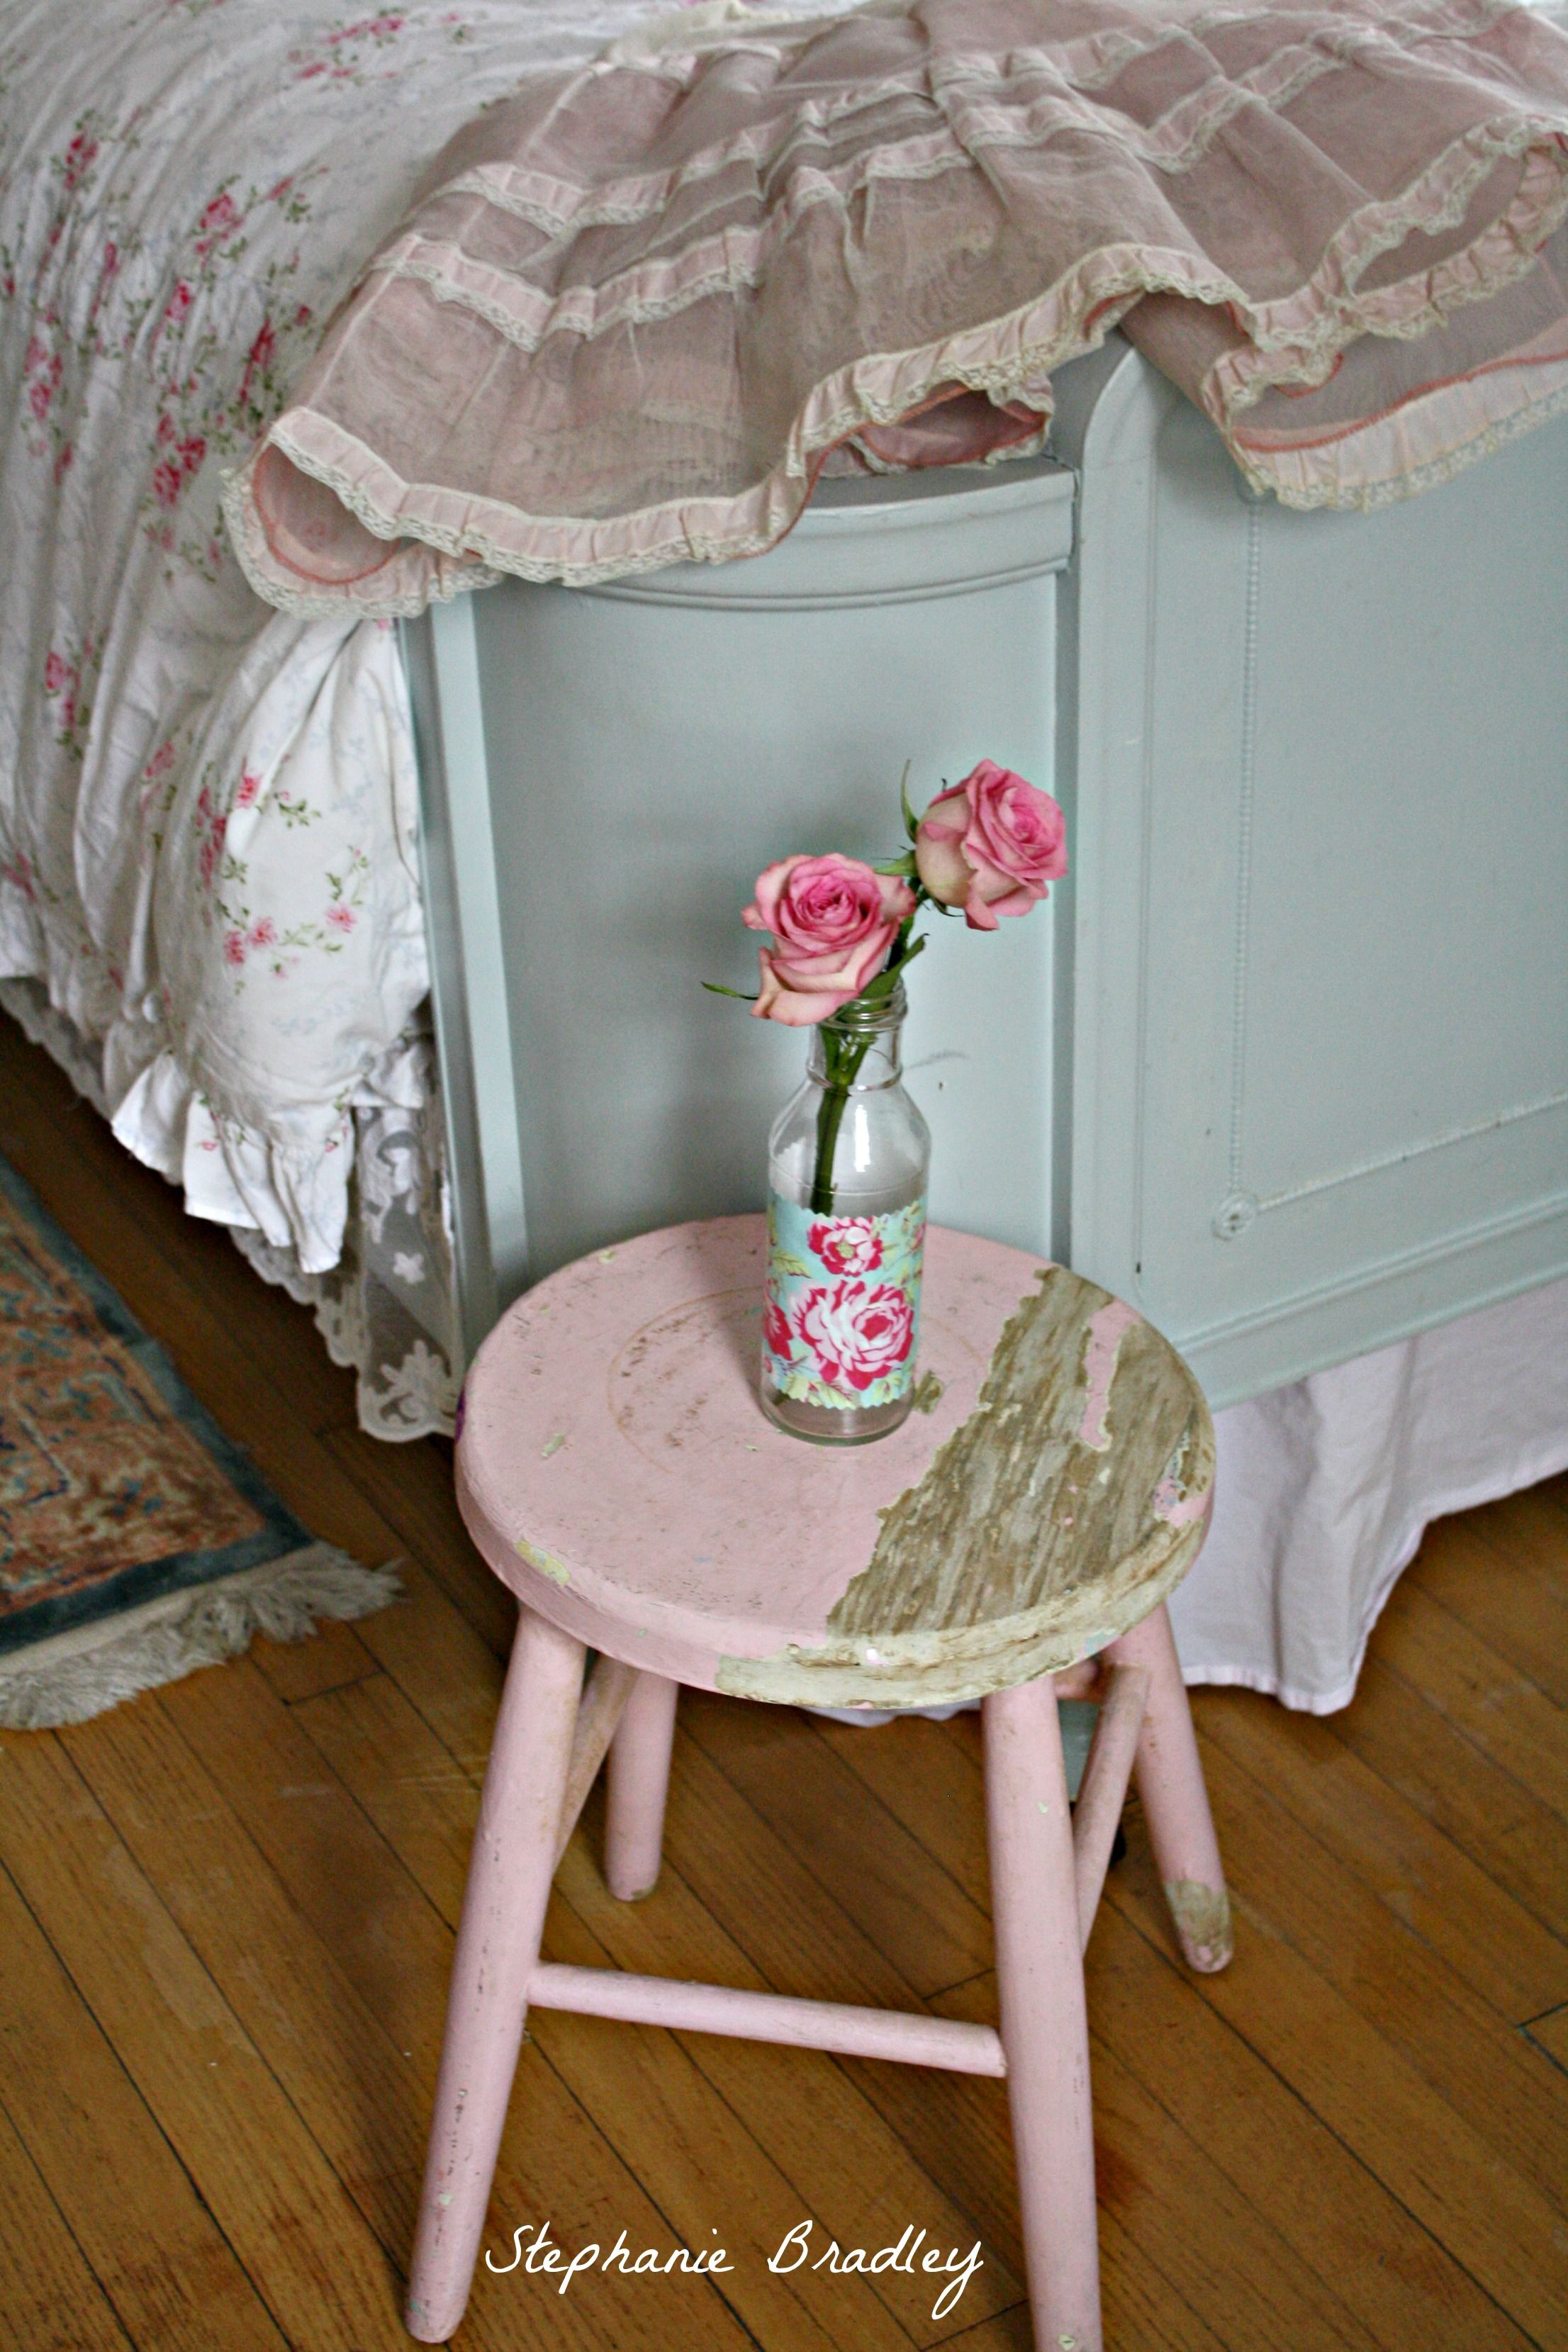 Shabby chic shabby chic group board muebles decoraci n vintage y pintura muebles Muebles vintage chic